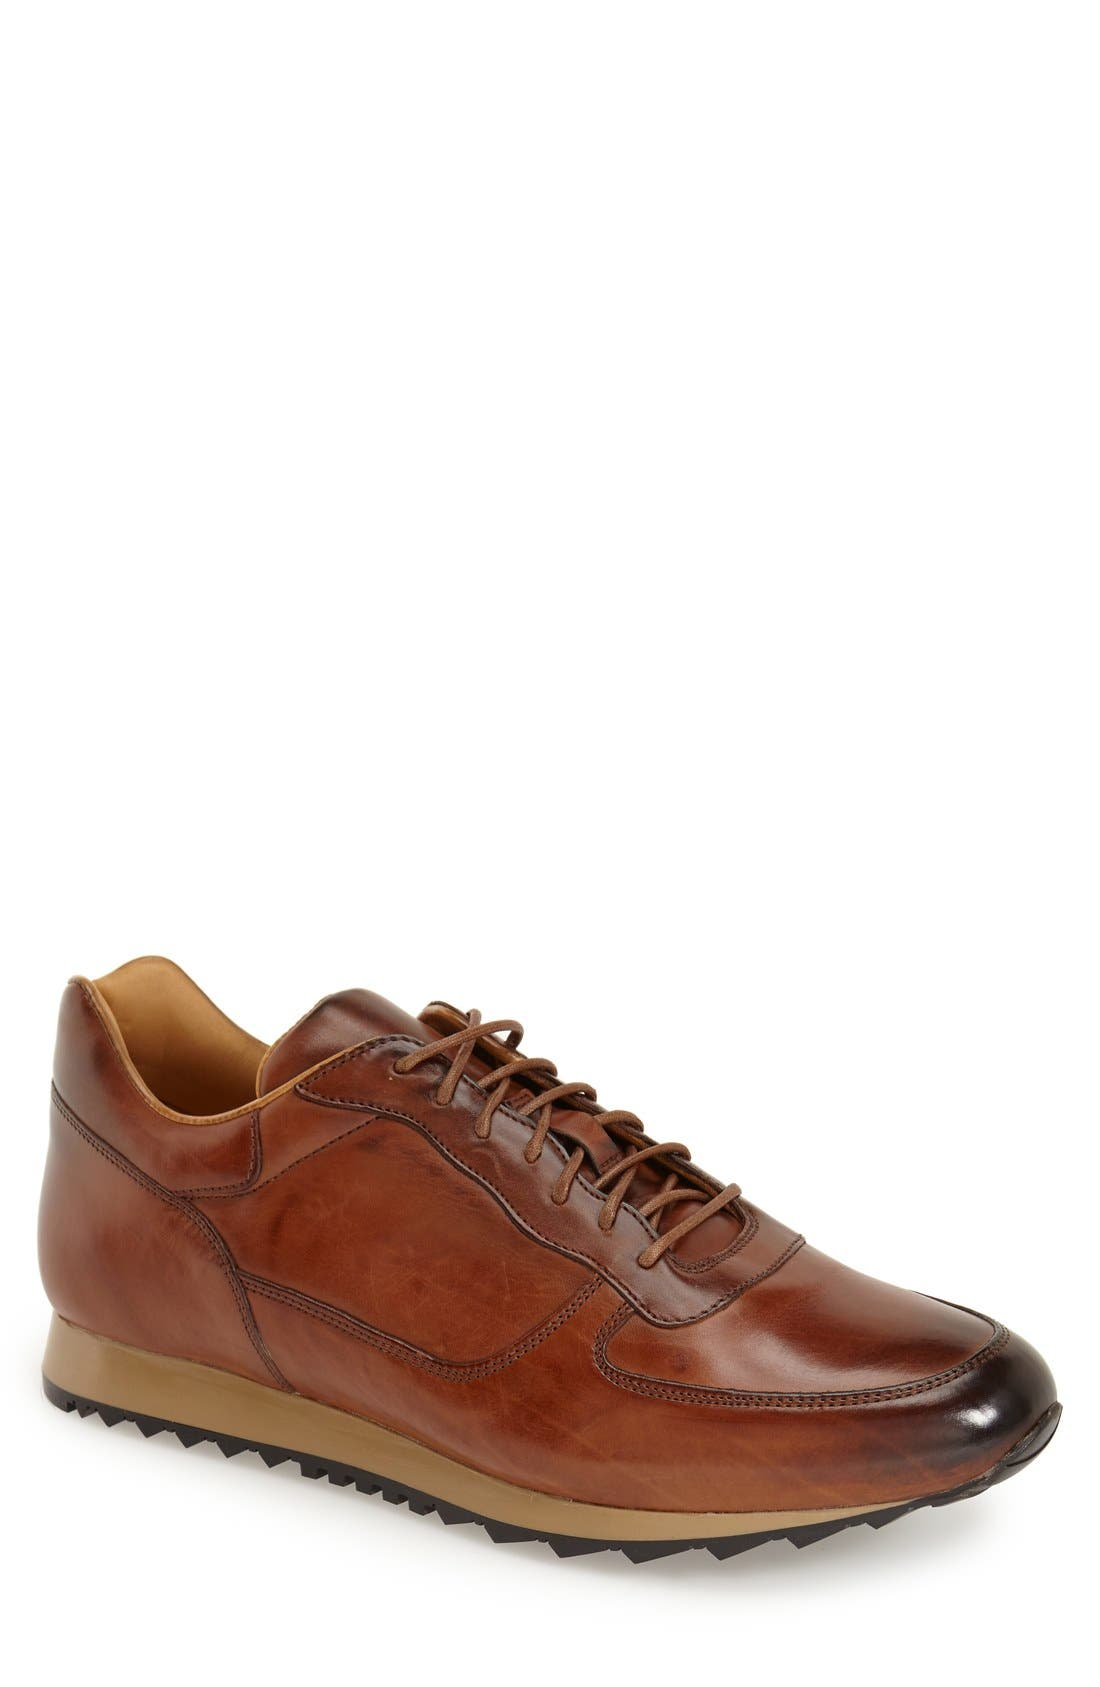 To Boot New York 'Sheridan' Sneaker,                             Main thumbnail 1, color,                             Cognac Leather